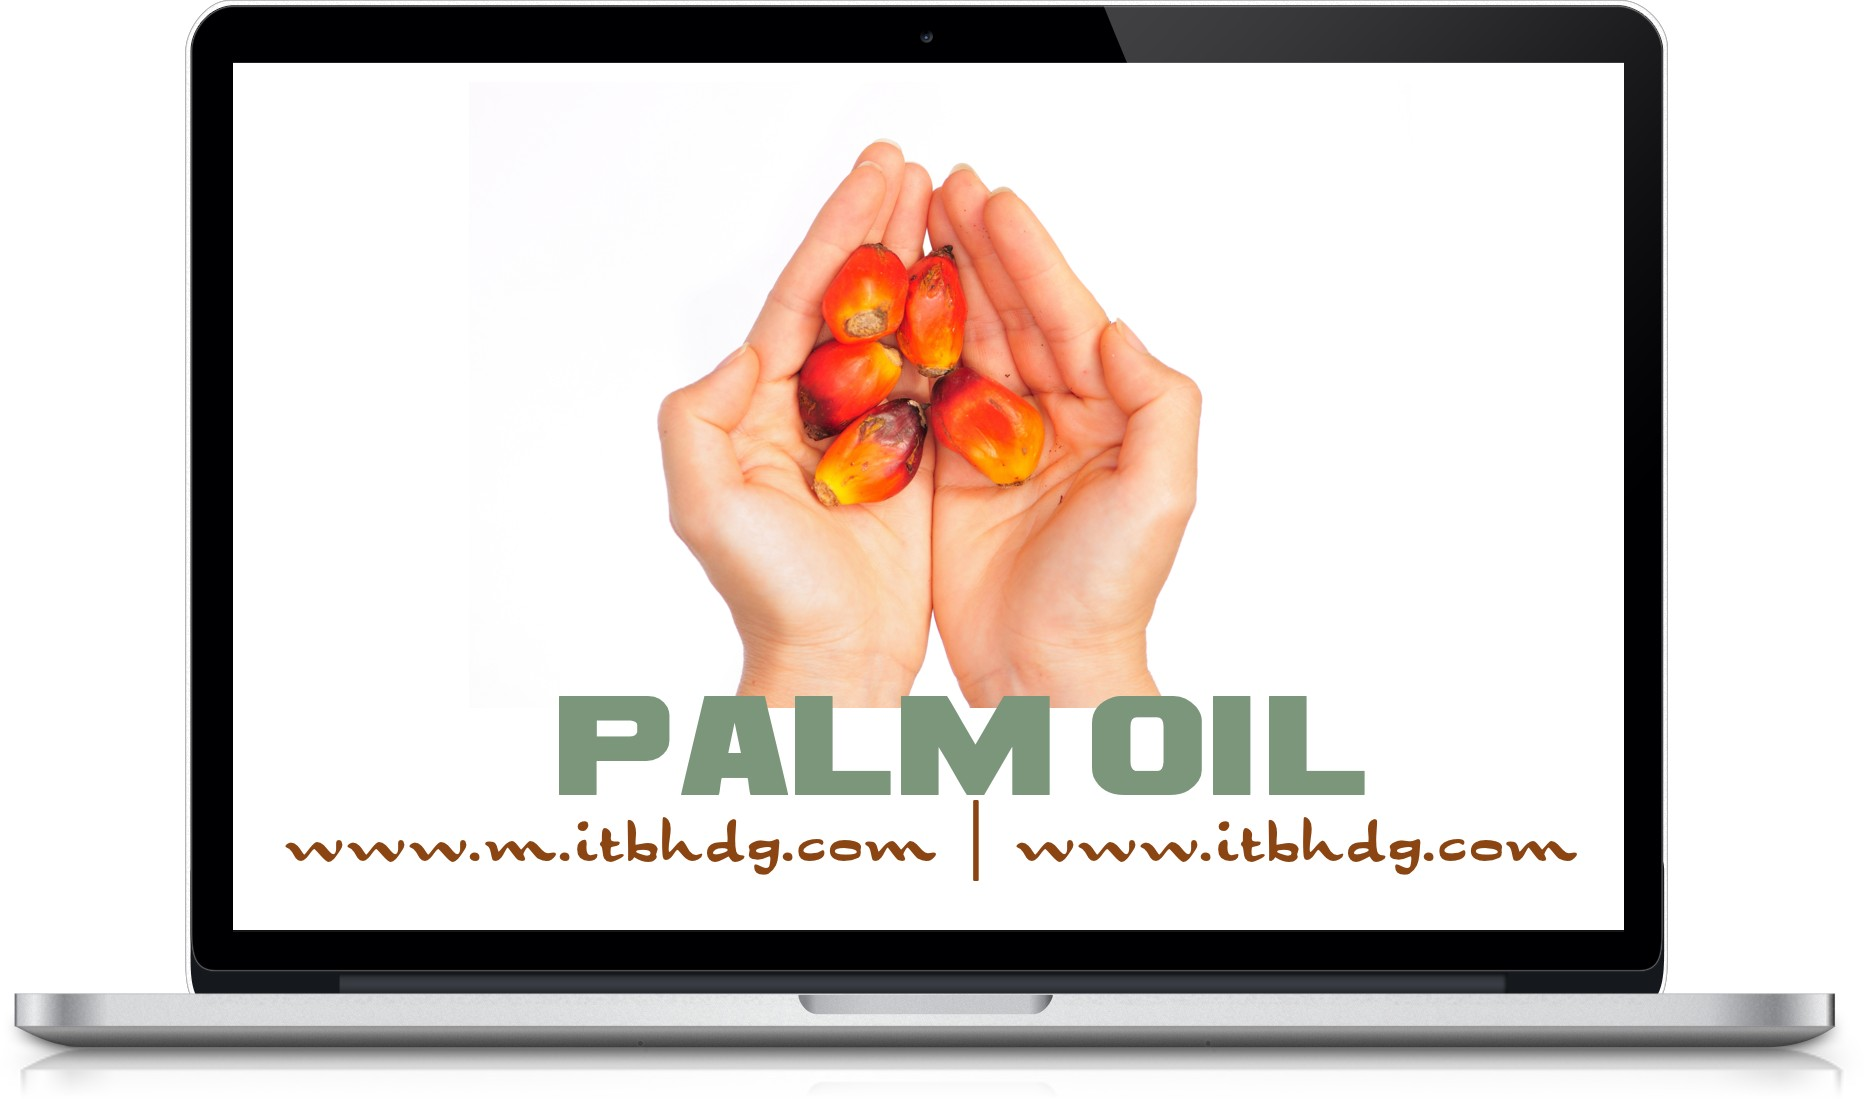 RBD Palm Oil, RBD Palm Olein, RBD Palm Kernel Oil, RBD Palm Stearin, Crude Palm Oil (CPO)  | www.m.itbhdg.com | www.itbhdg.com